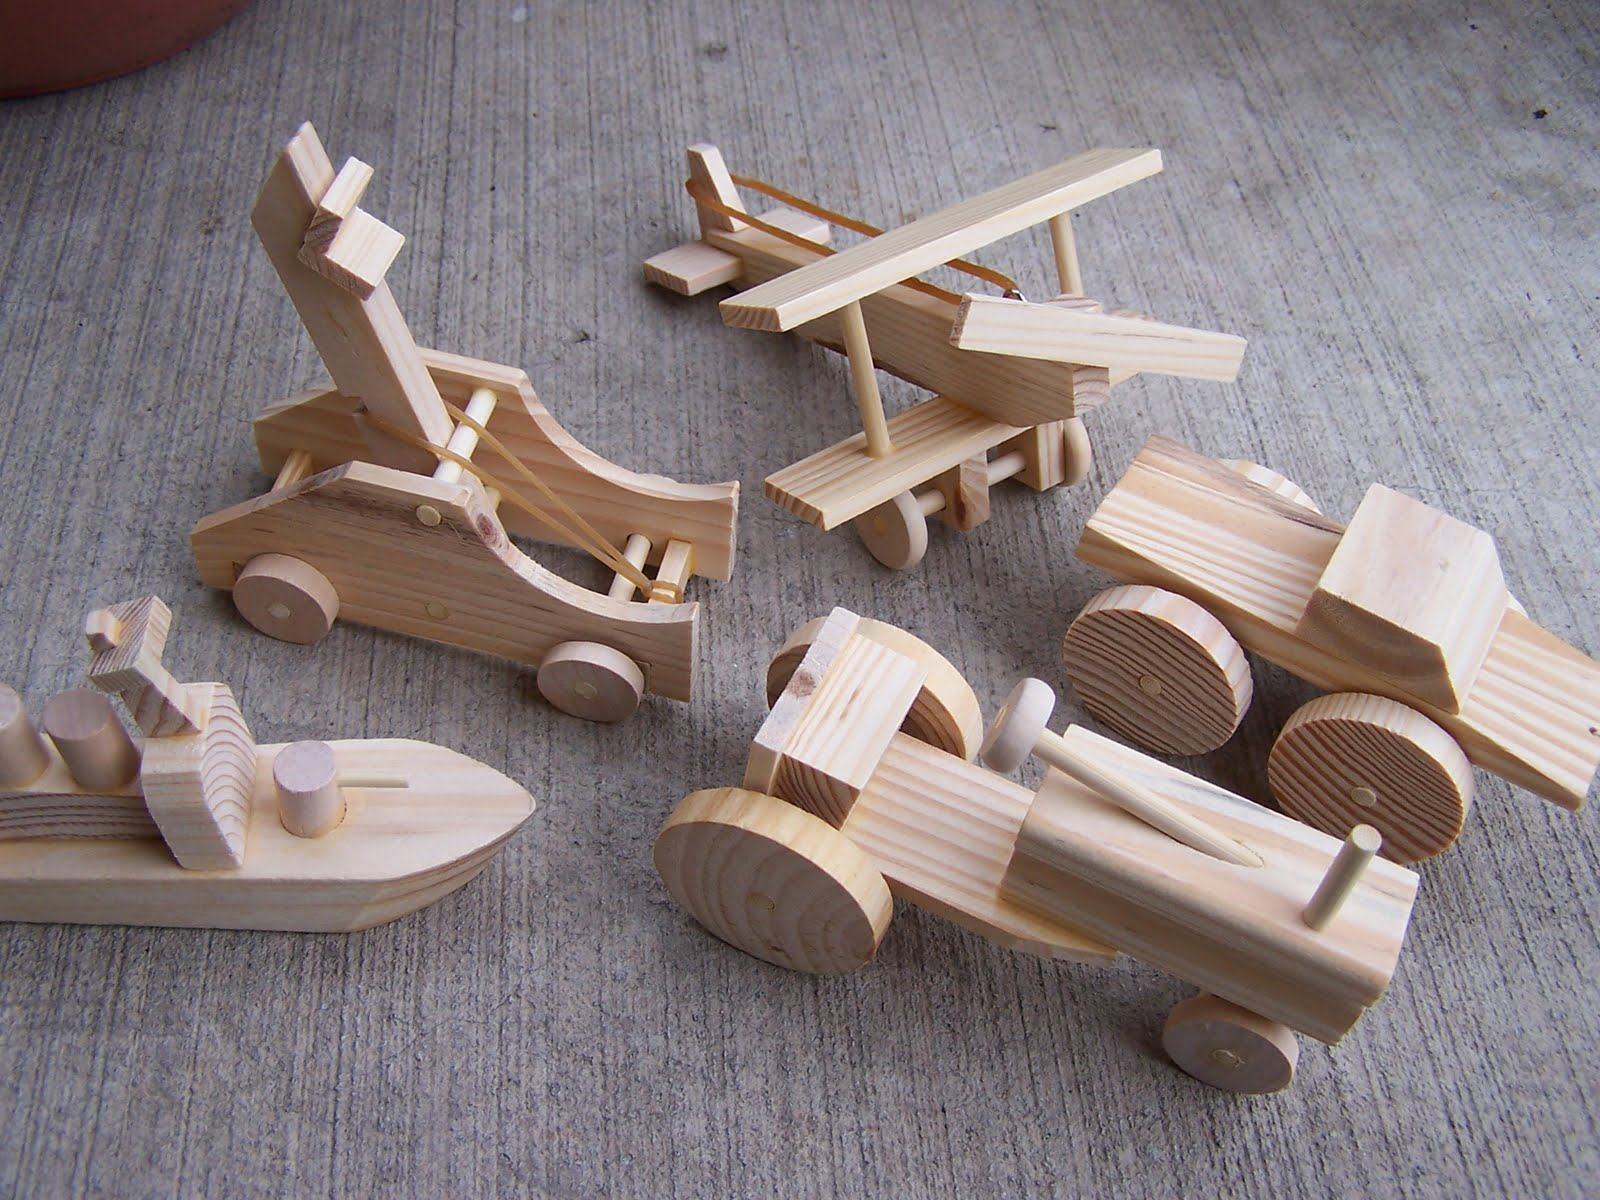 Toy Plans, Woodworking Plans and Patterns by WoodcraftPlans.com